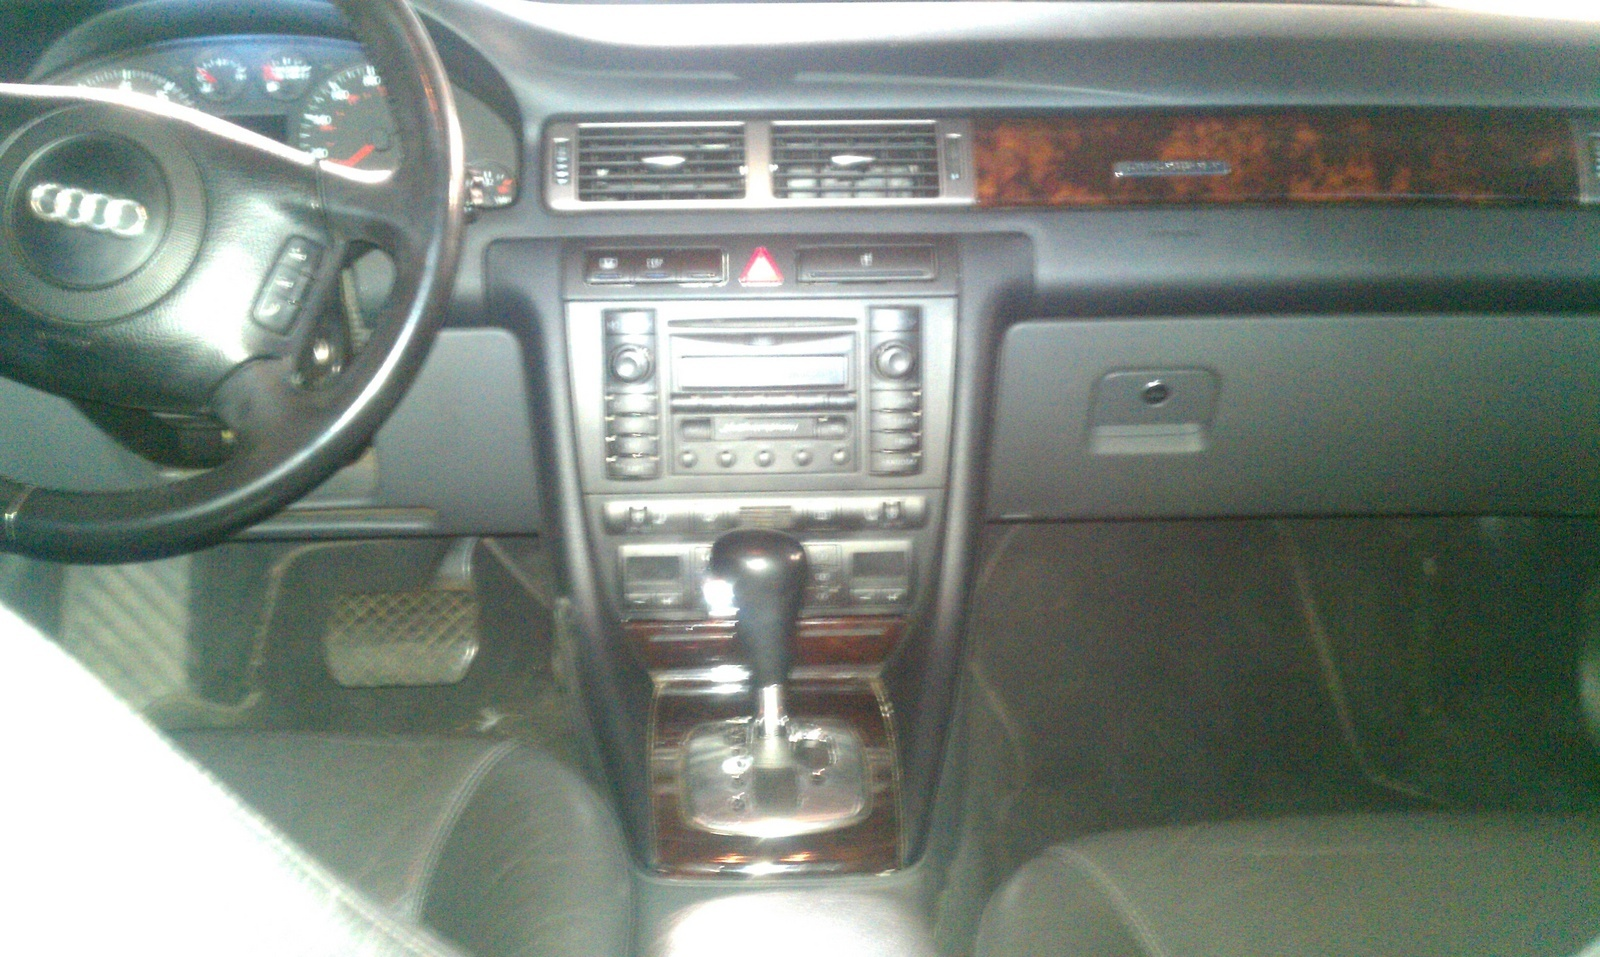 Audi A6 Quattro Audi A6 Questions Does Anyone Know If The 2001 Audi A6 Quattro